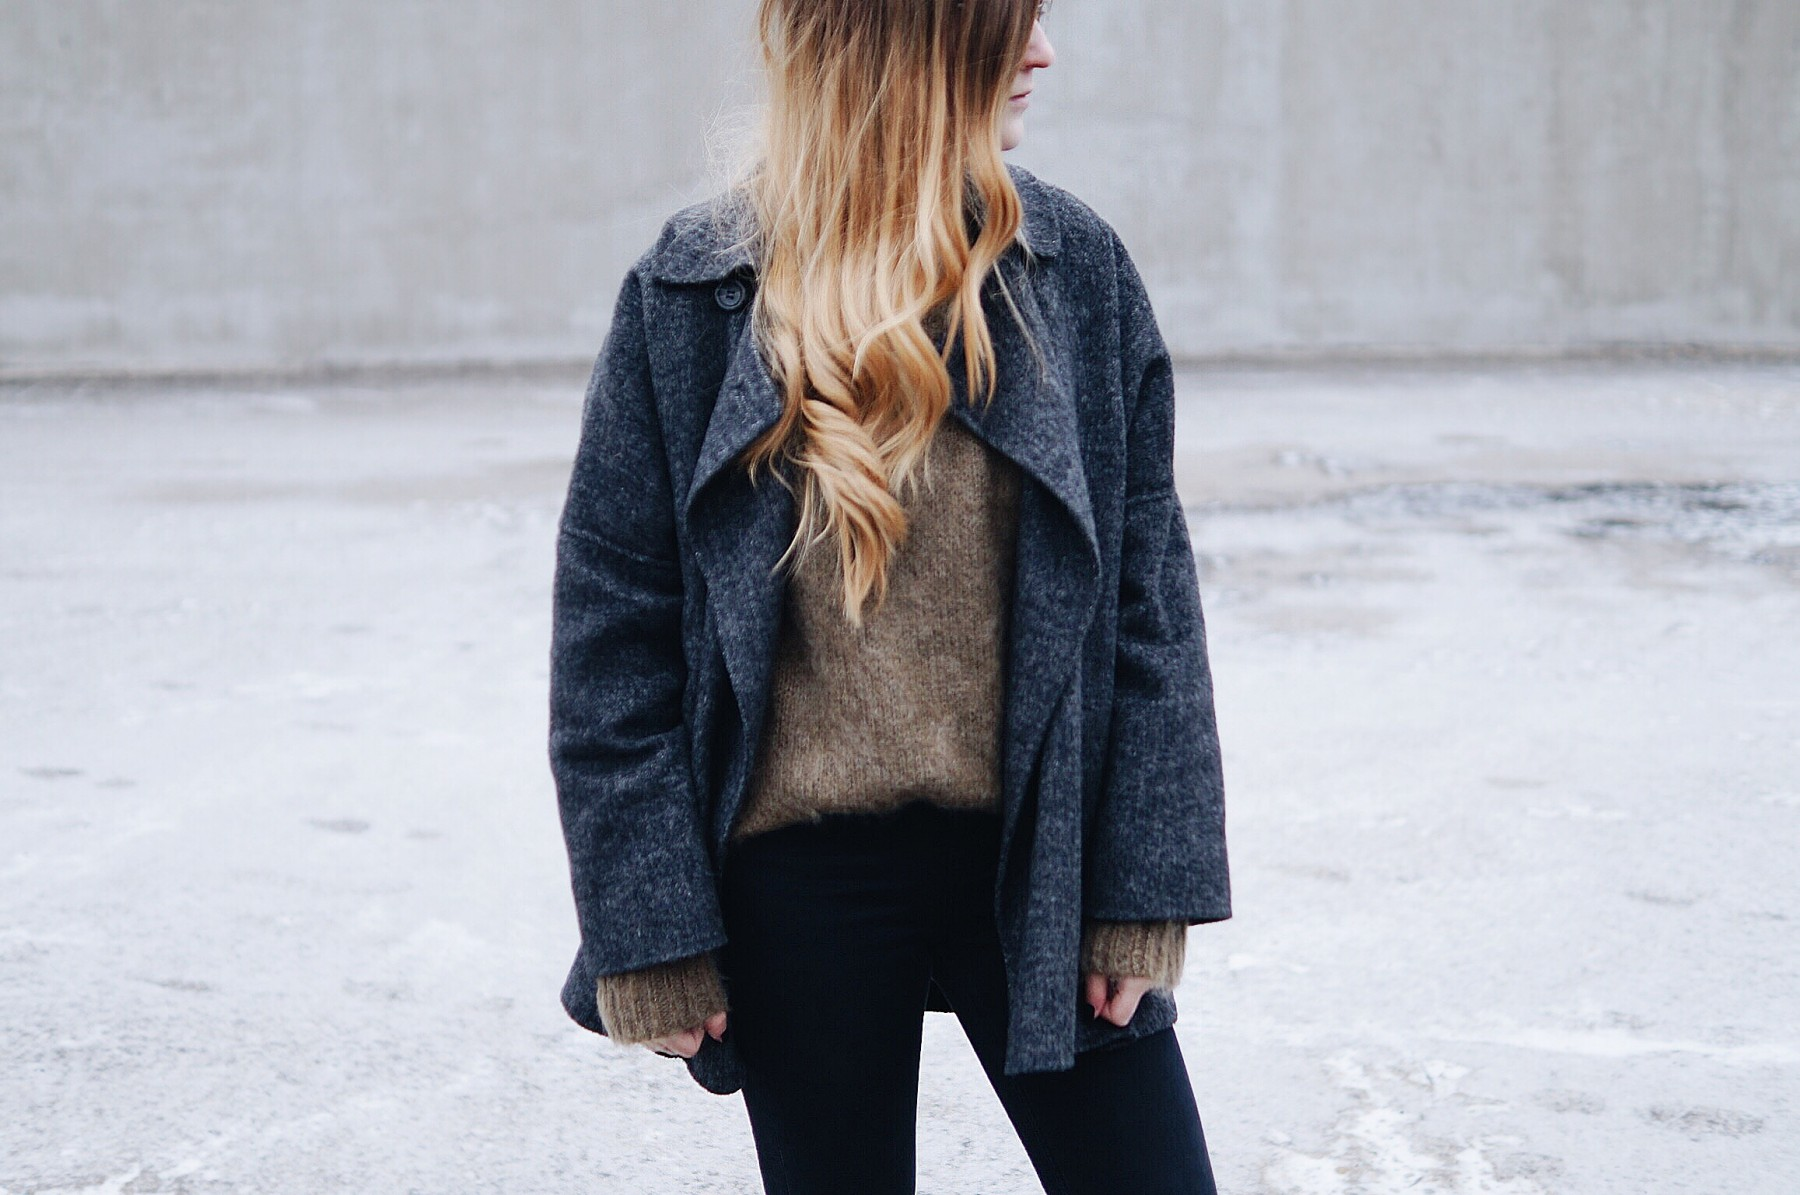 mohair_sweater_wool_coat_winter_outfit8